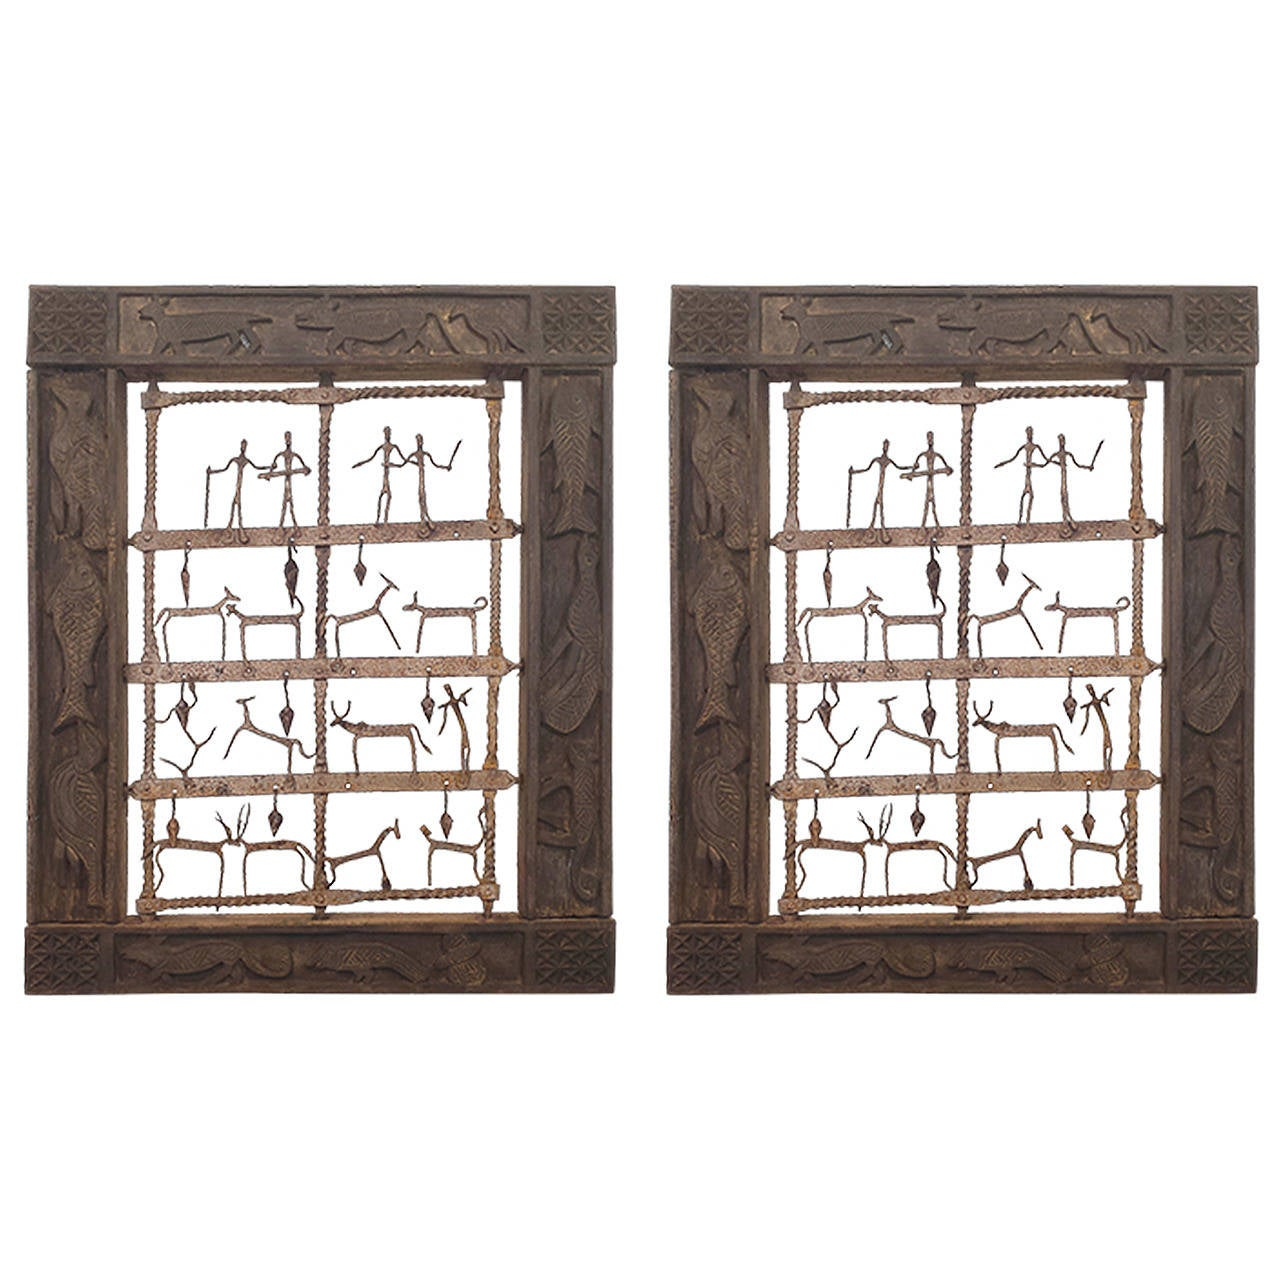 Ethnographic Pair of Wood Carved Animals Wall Panel with Metal Animals & Figures